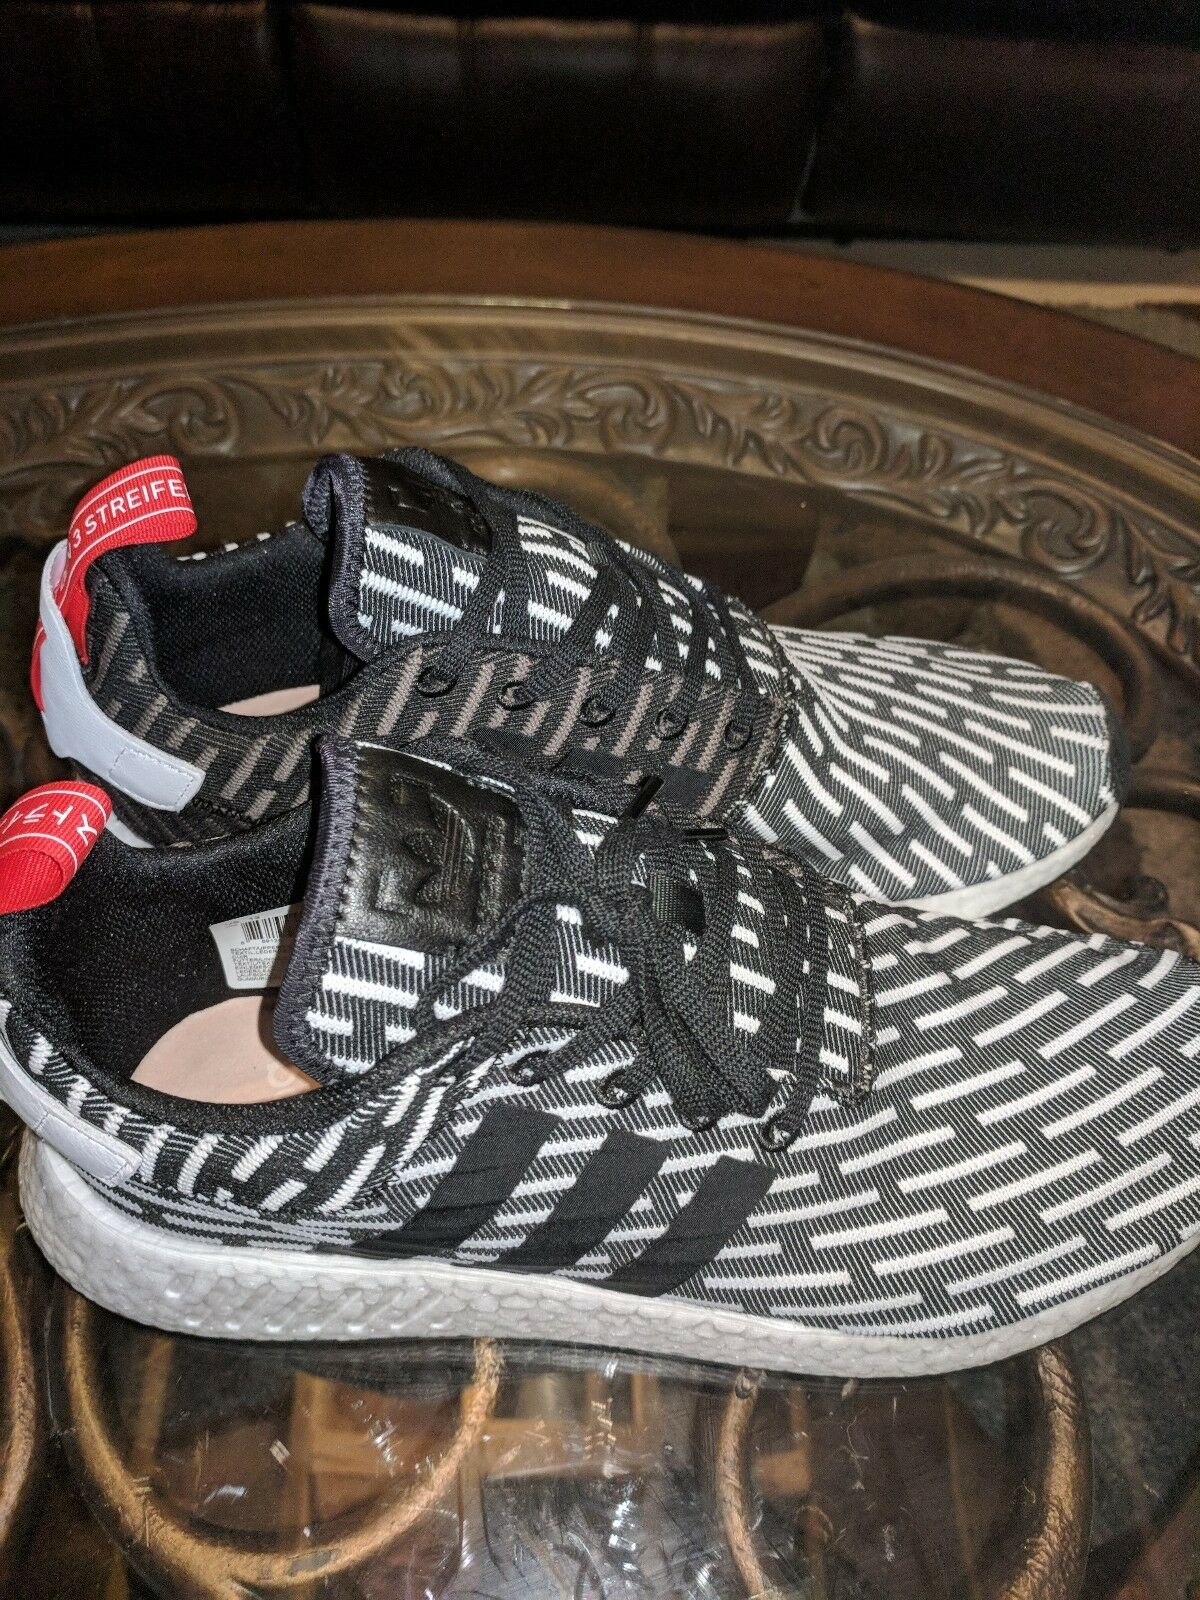 Adidas NMD_R2 PK Black White Red Grey Size 13